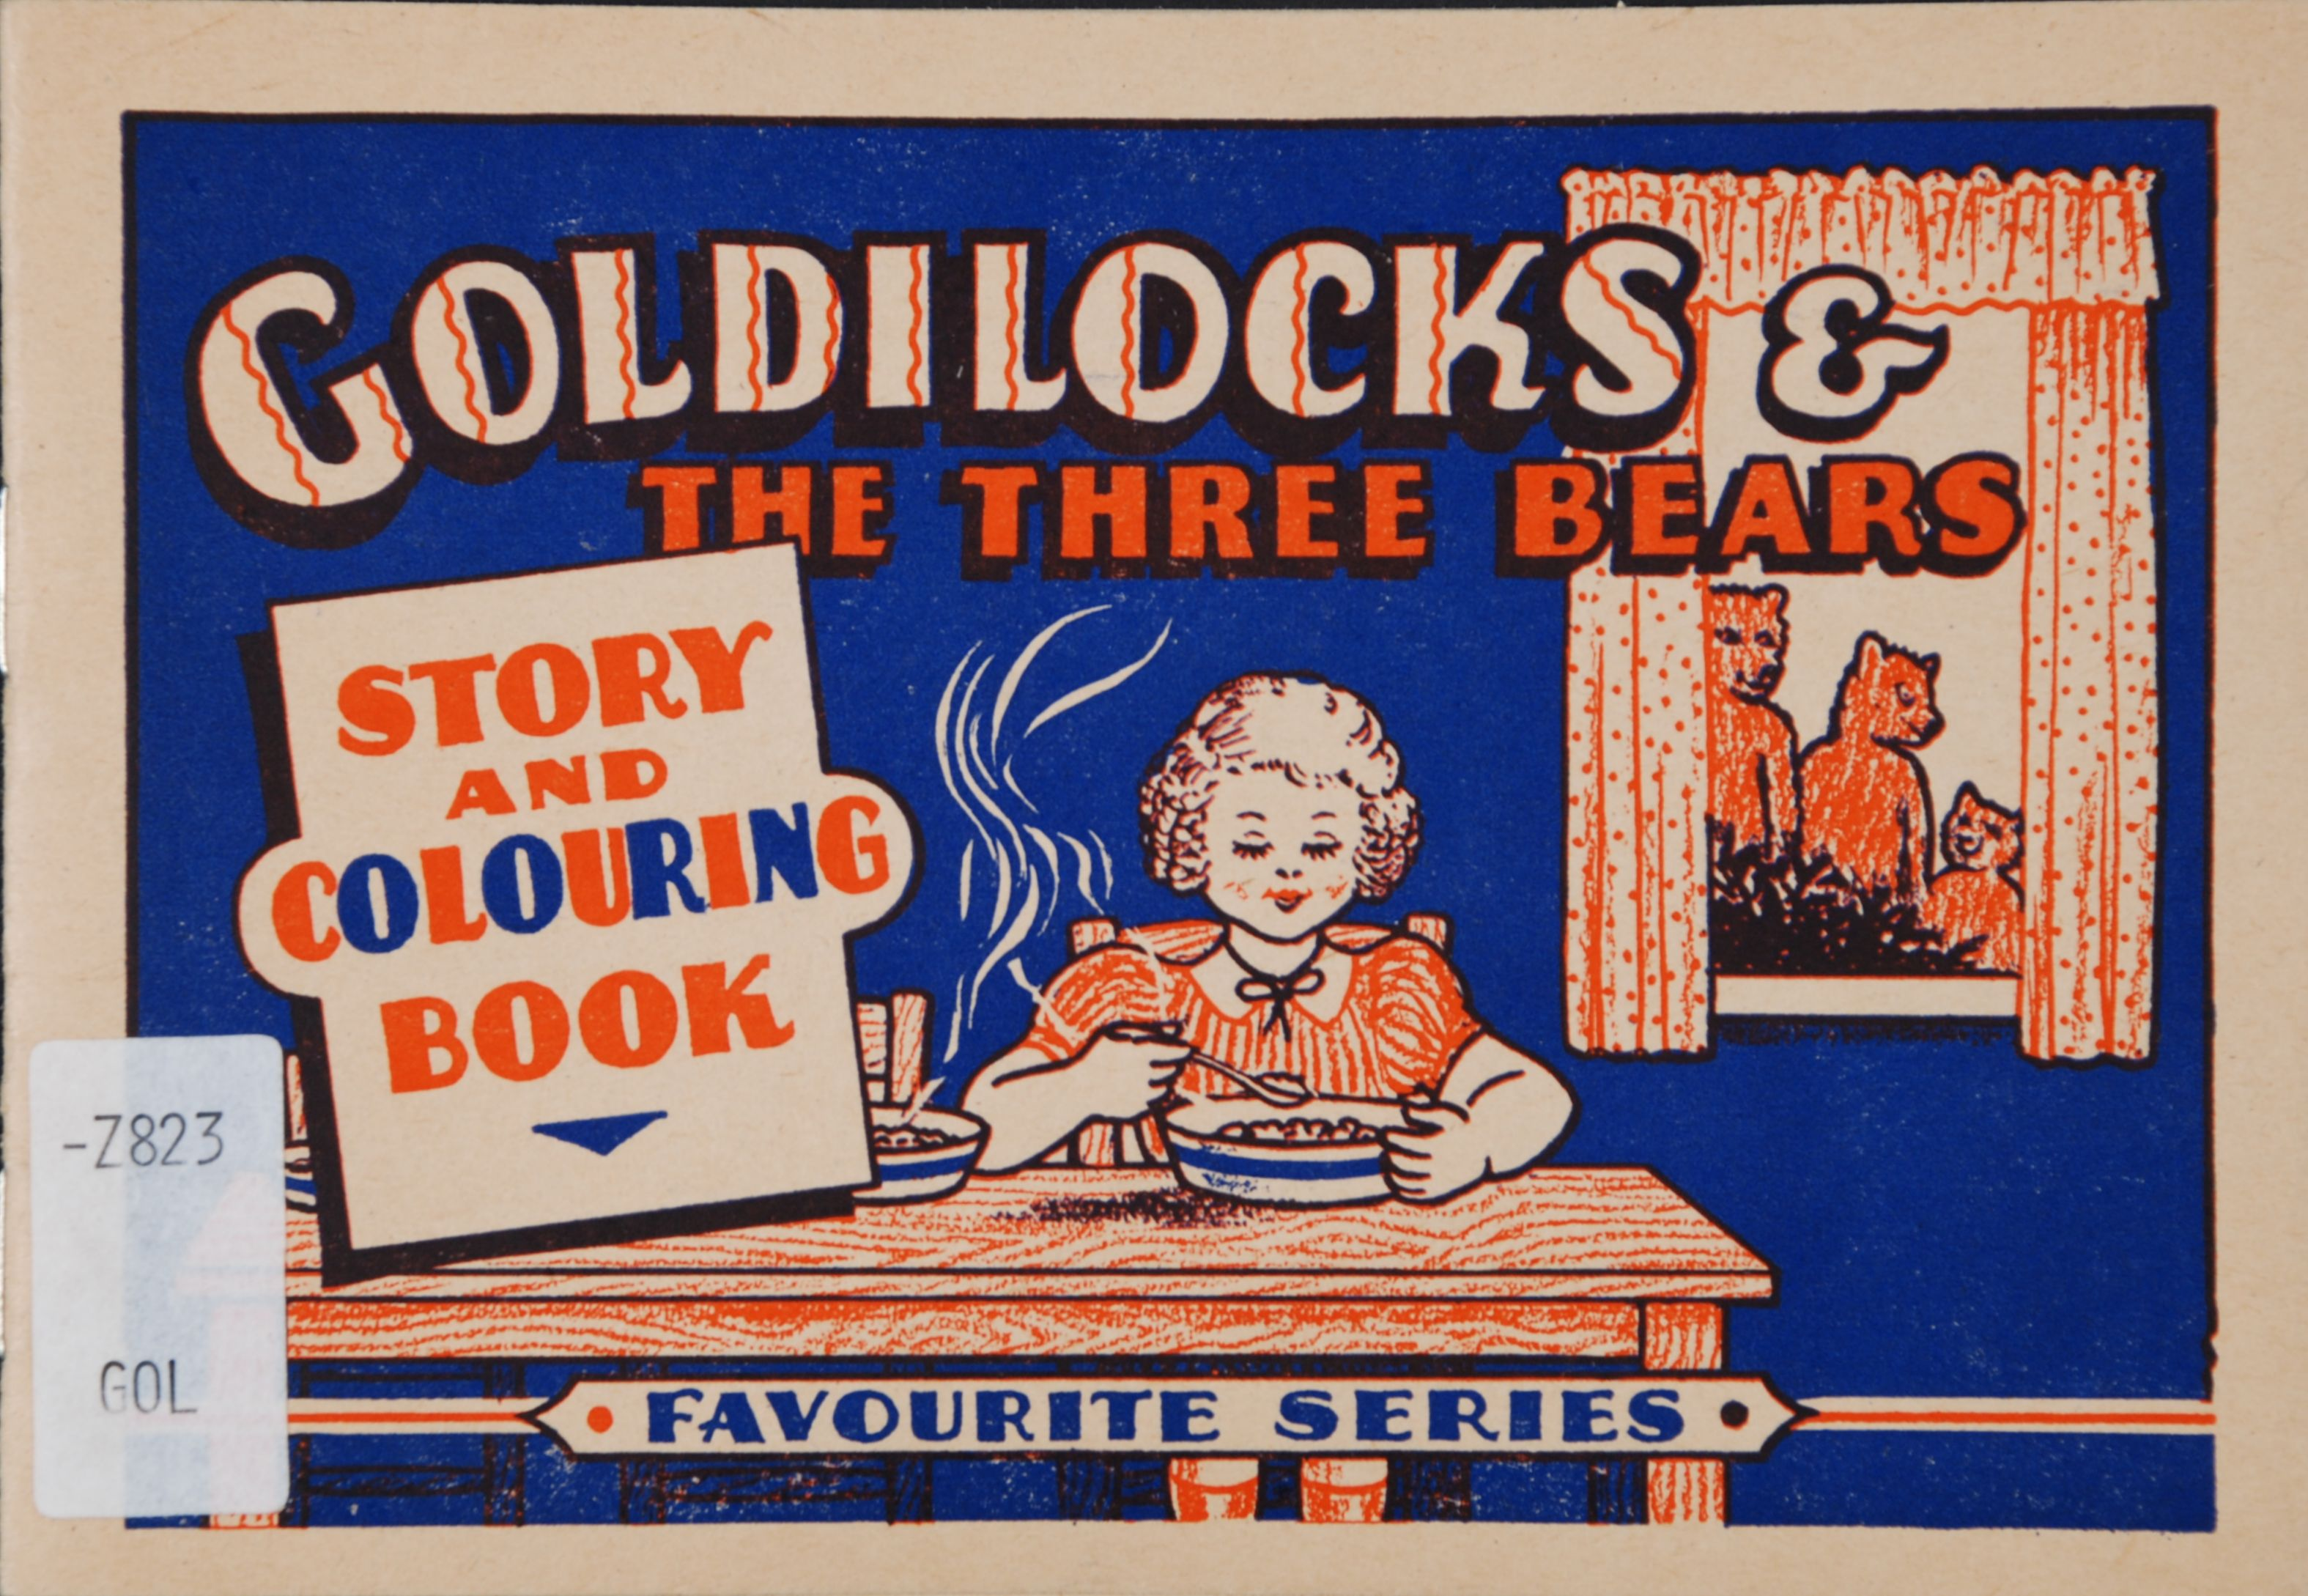 Goldilocks and the three bears: for reading-telling-and colouring with crayons. [Wellington, N.Z.: N.Z. Transfer Co., 19--?].